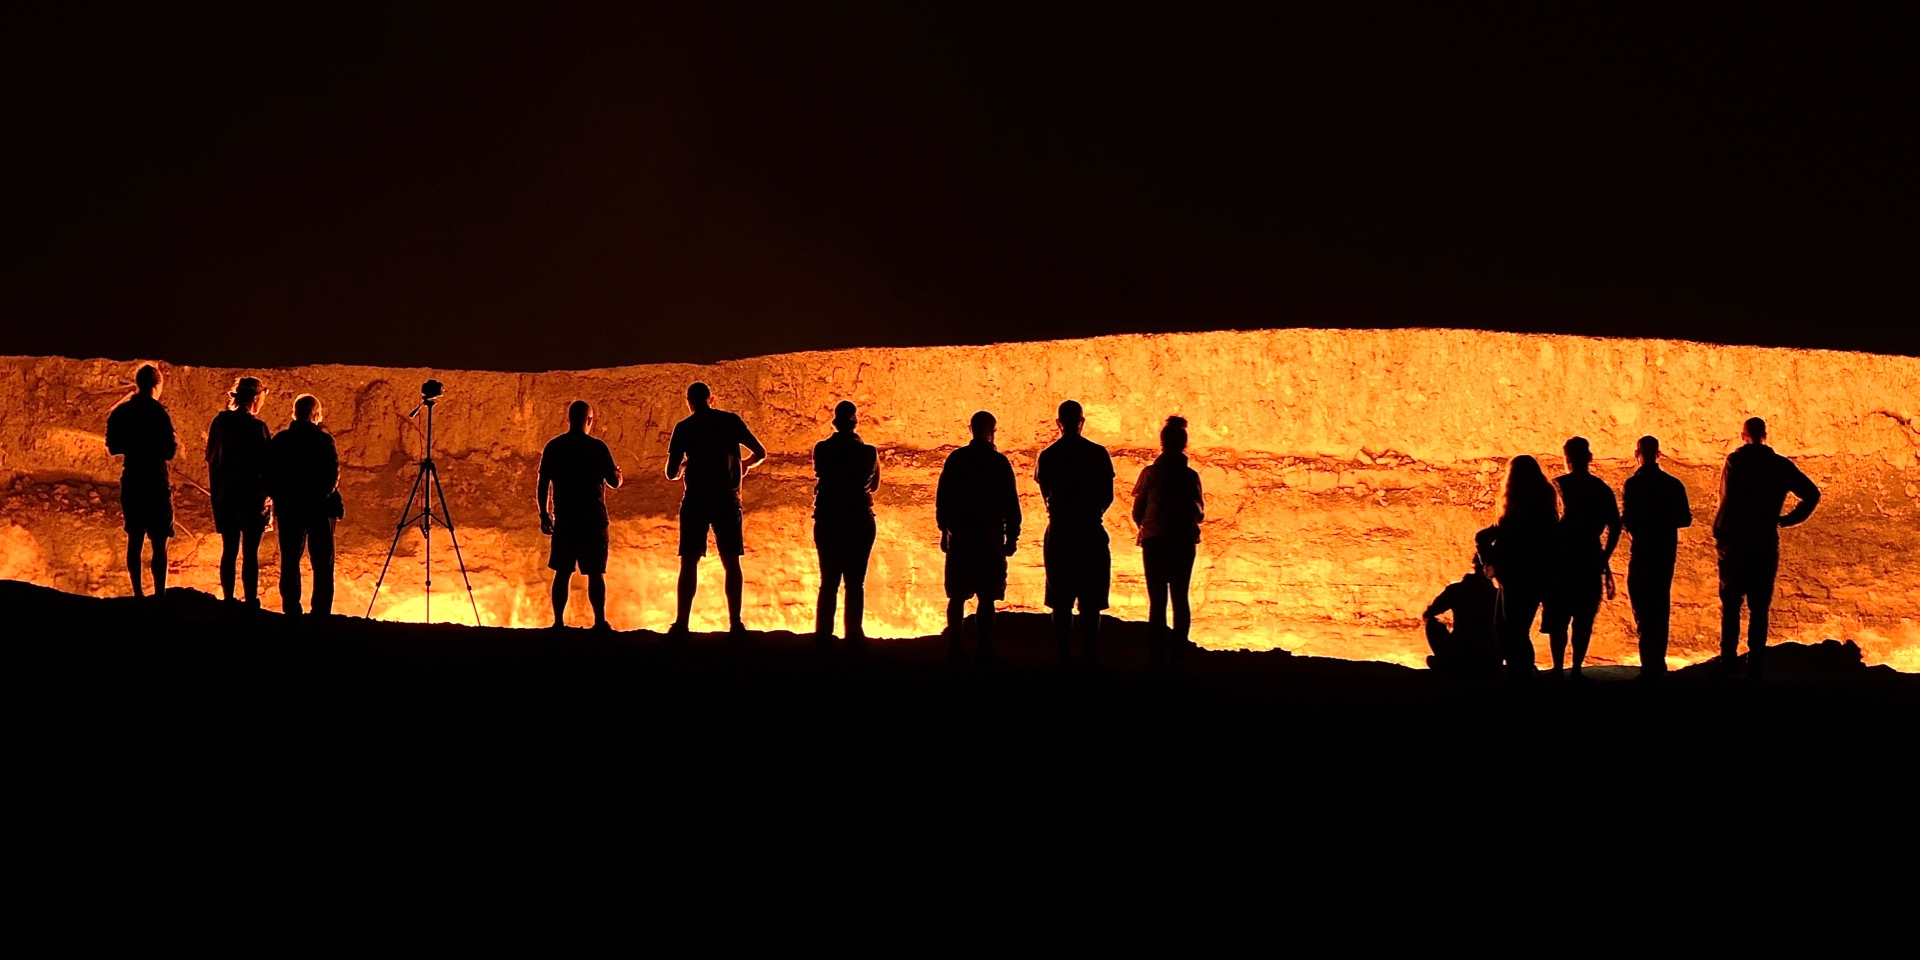 The Gates of Hell, Darvaza Crater, Turkm